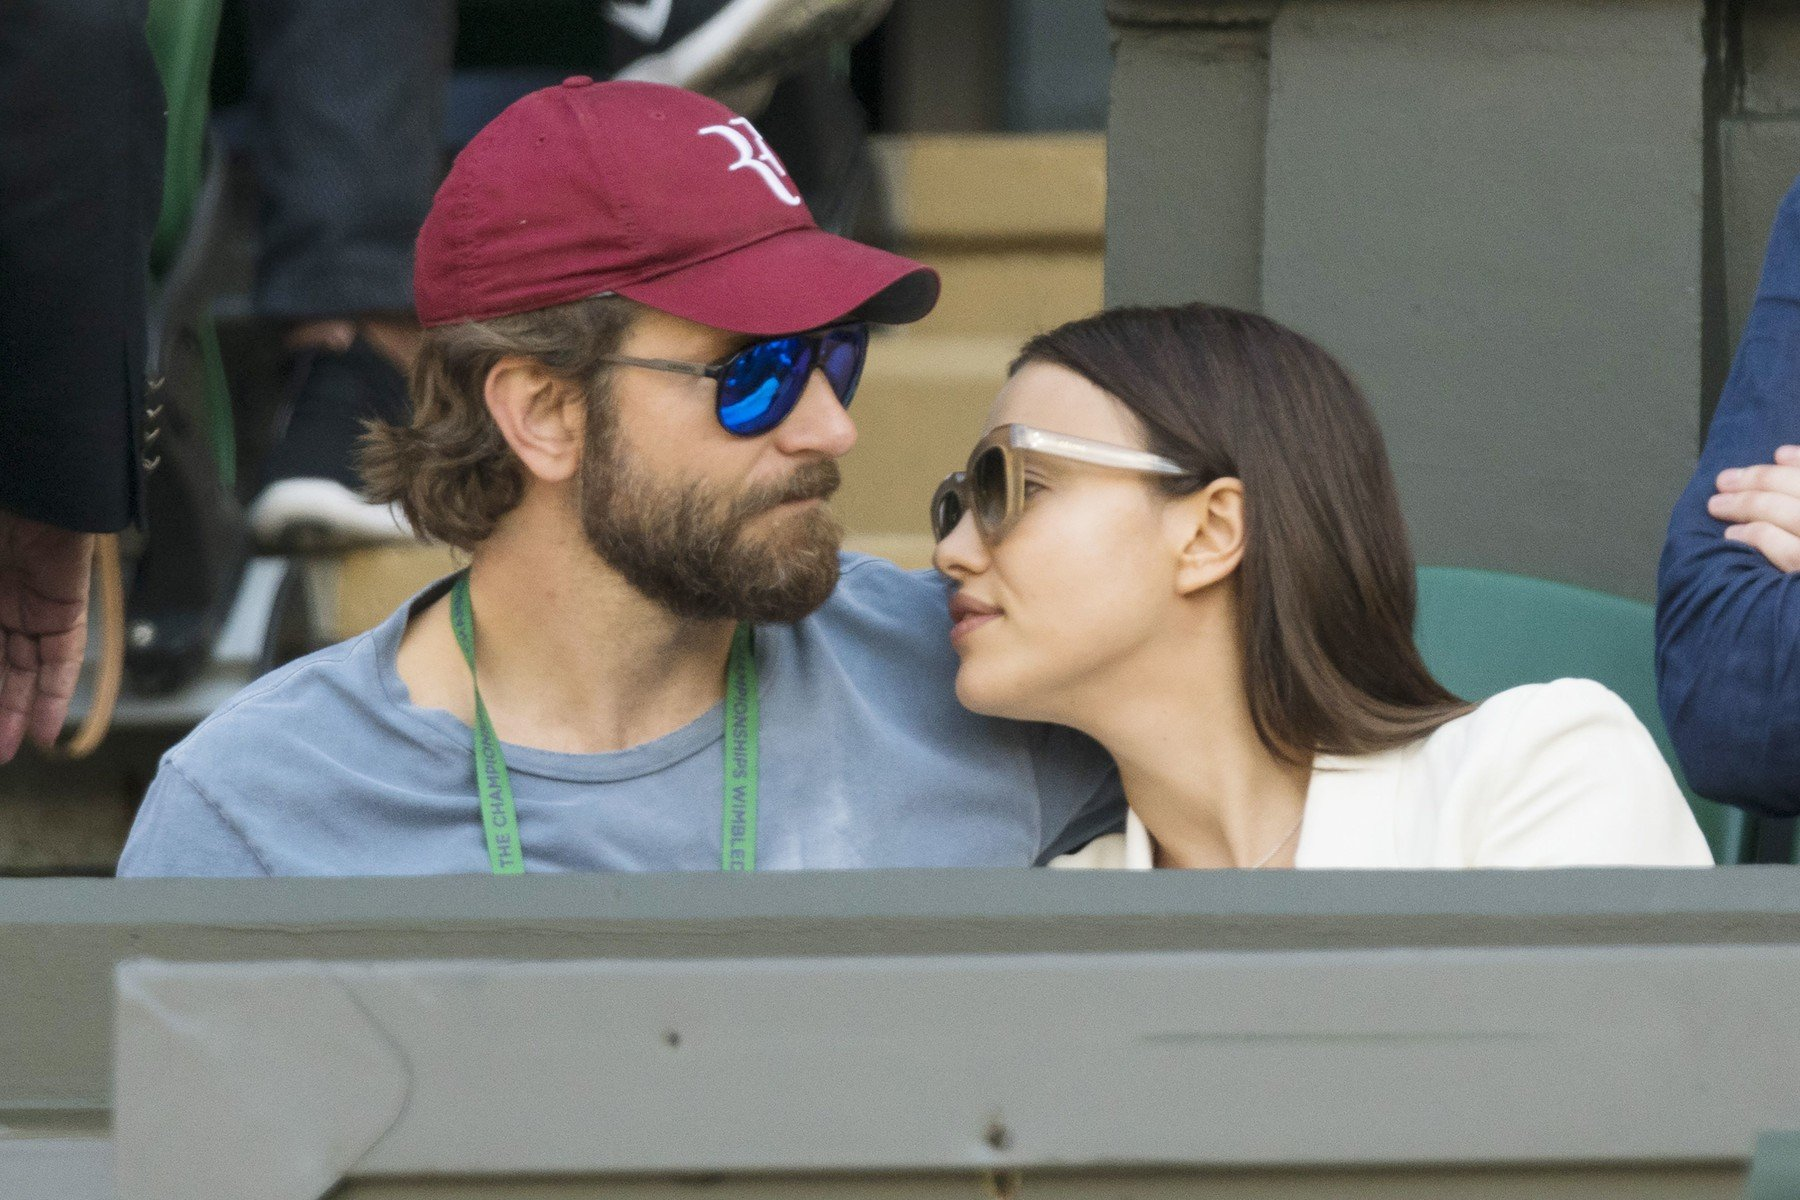 /Bradley Cooper and Irina Shayk Wimbledon Tennis Championships, London, UK  - 06 Jul 2016, Image: 293368108, License: Rights-managed, Restrictions: , Model Release: no, Credit line: Profimedia, TEMP Rex Features